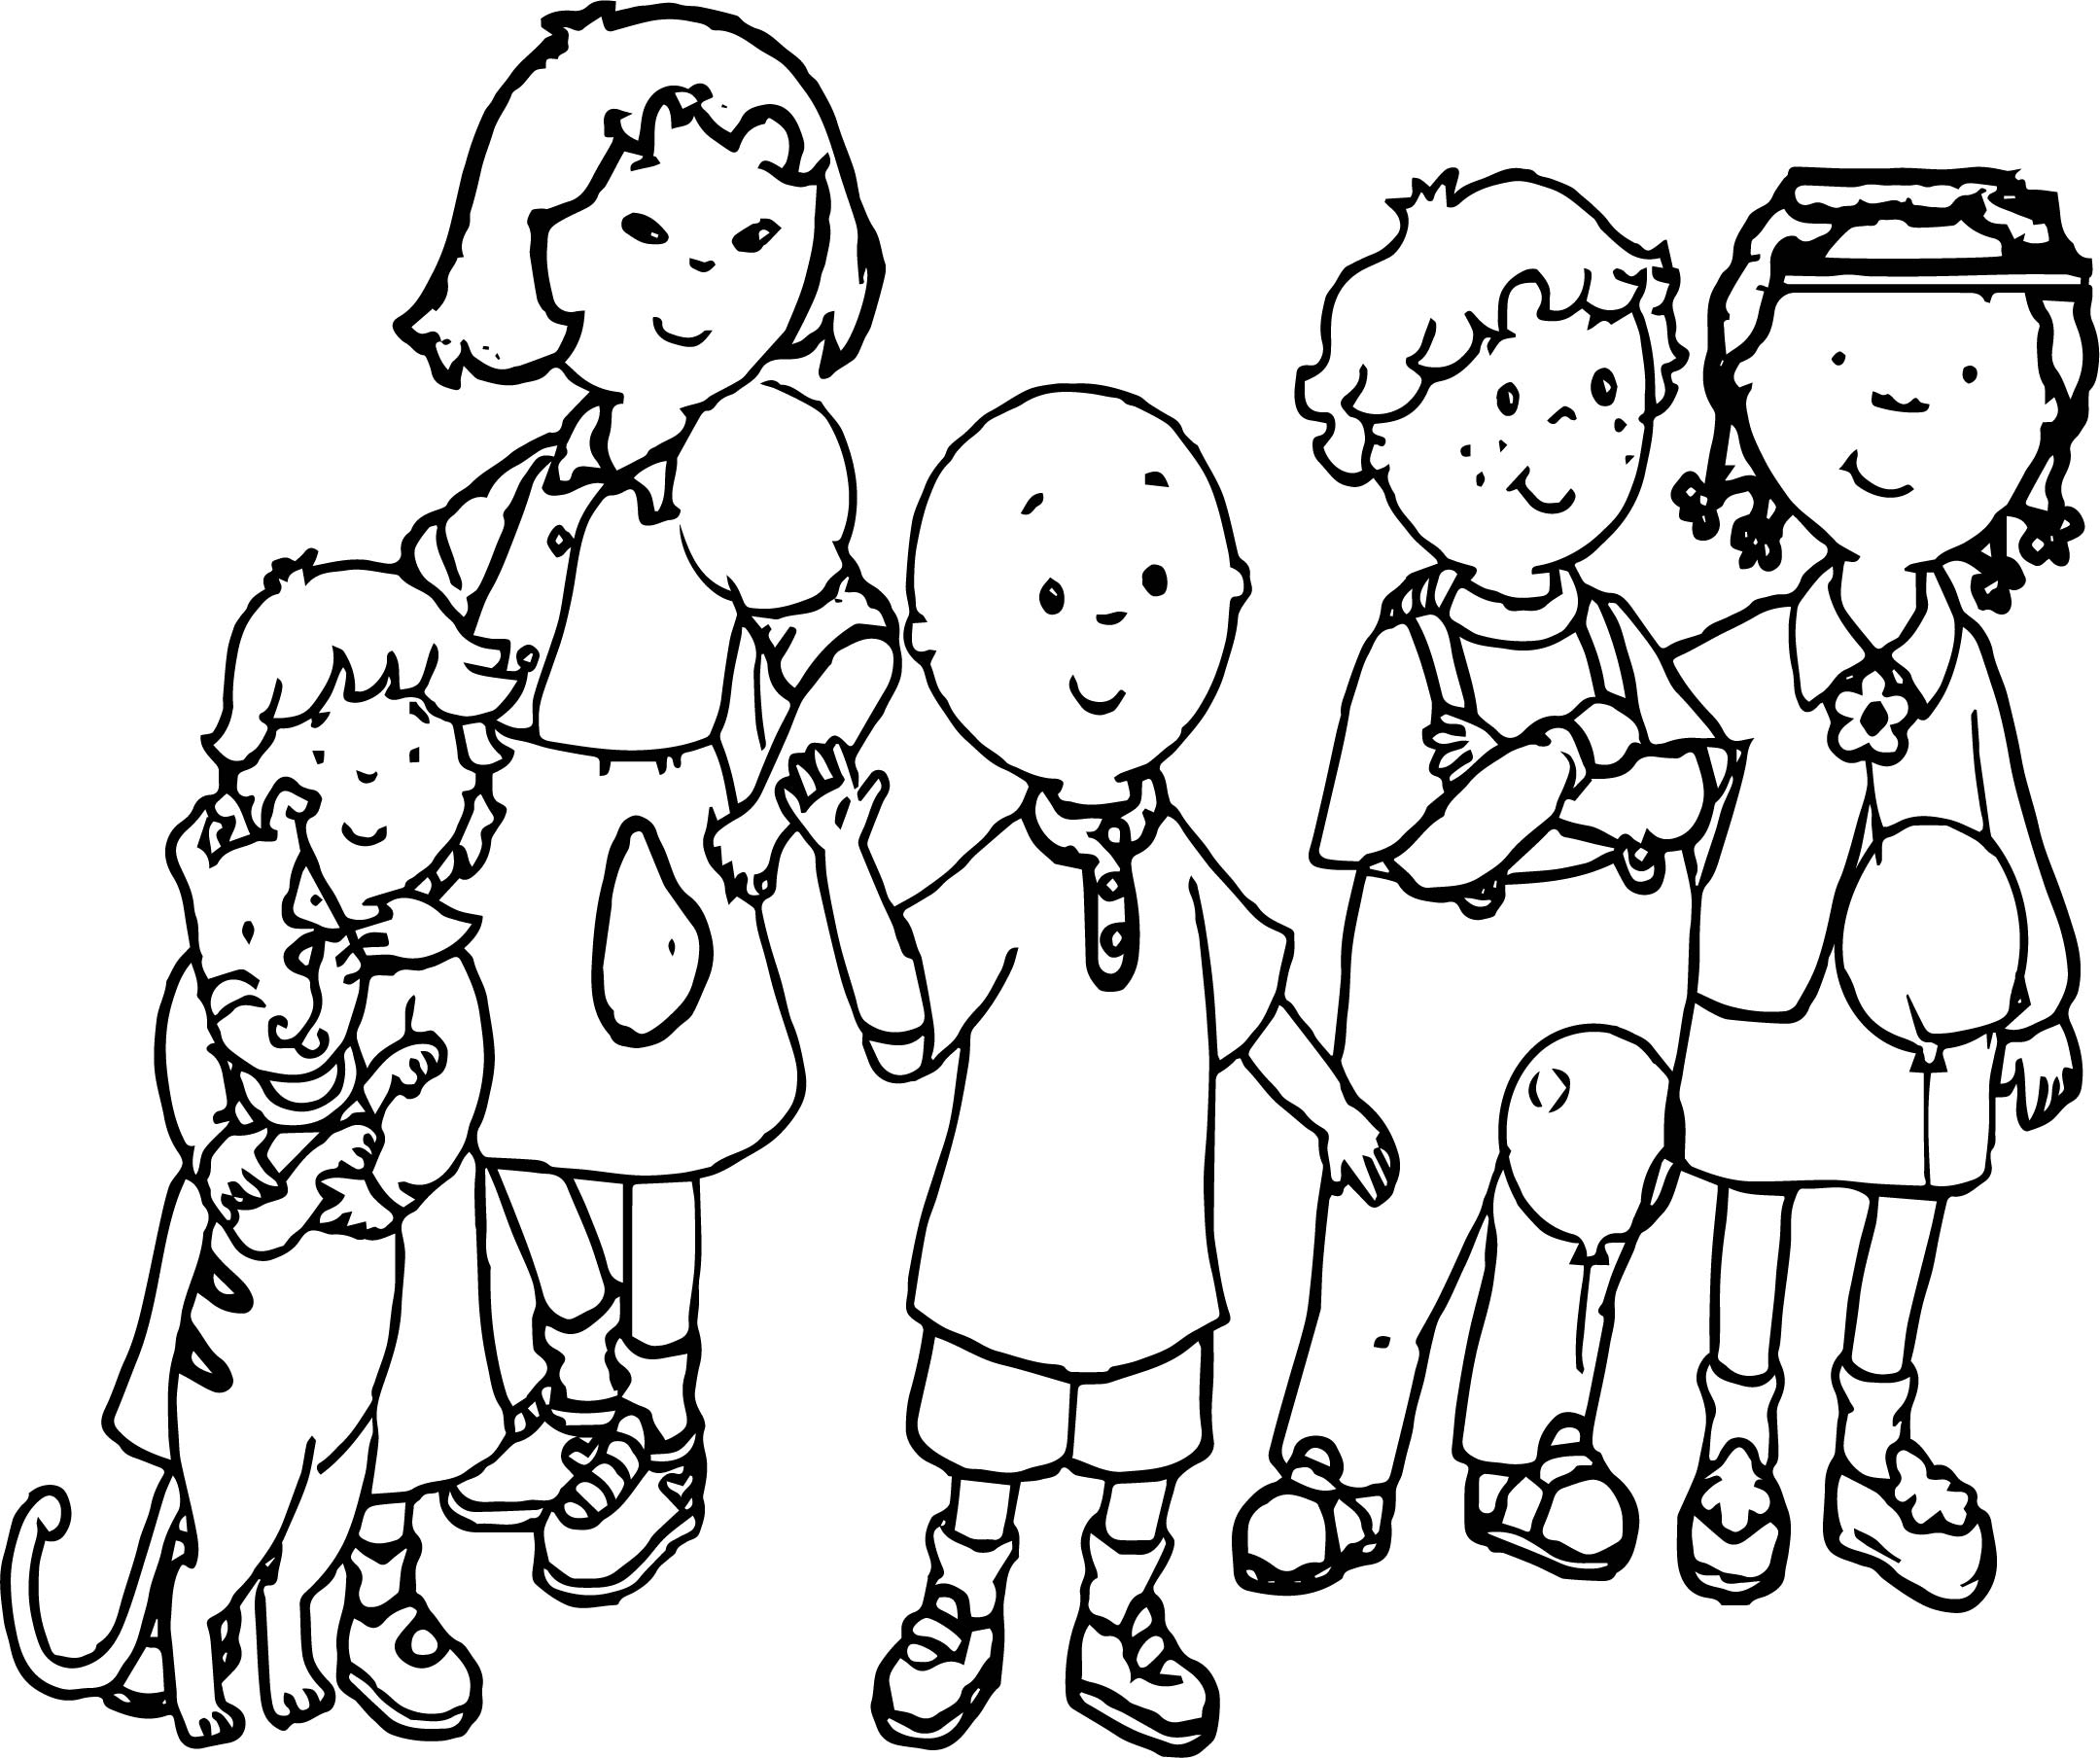 Caillou Together Friends Coloring Page